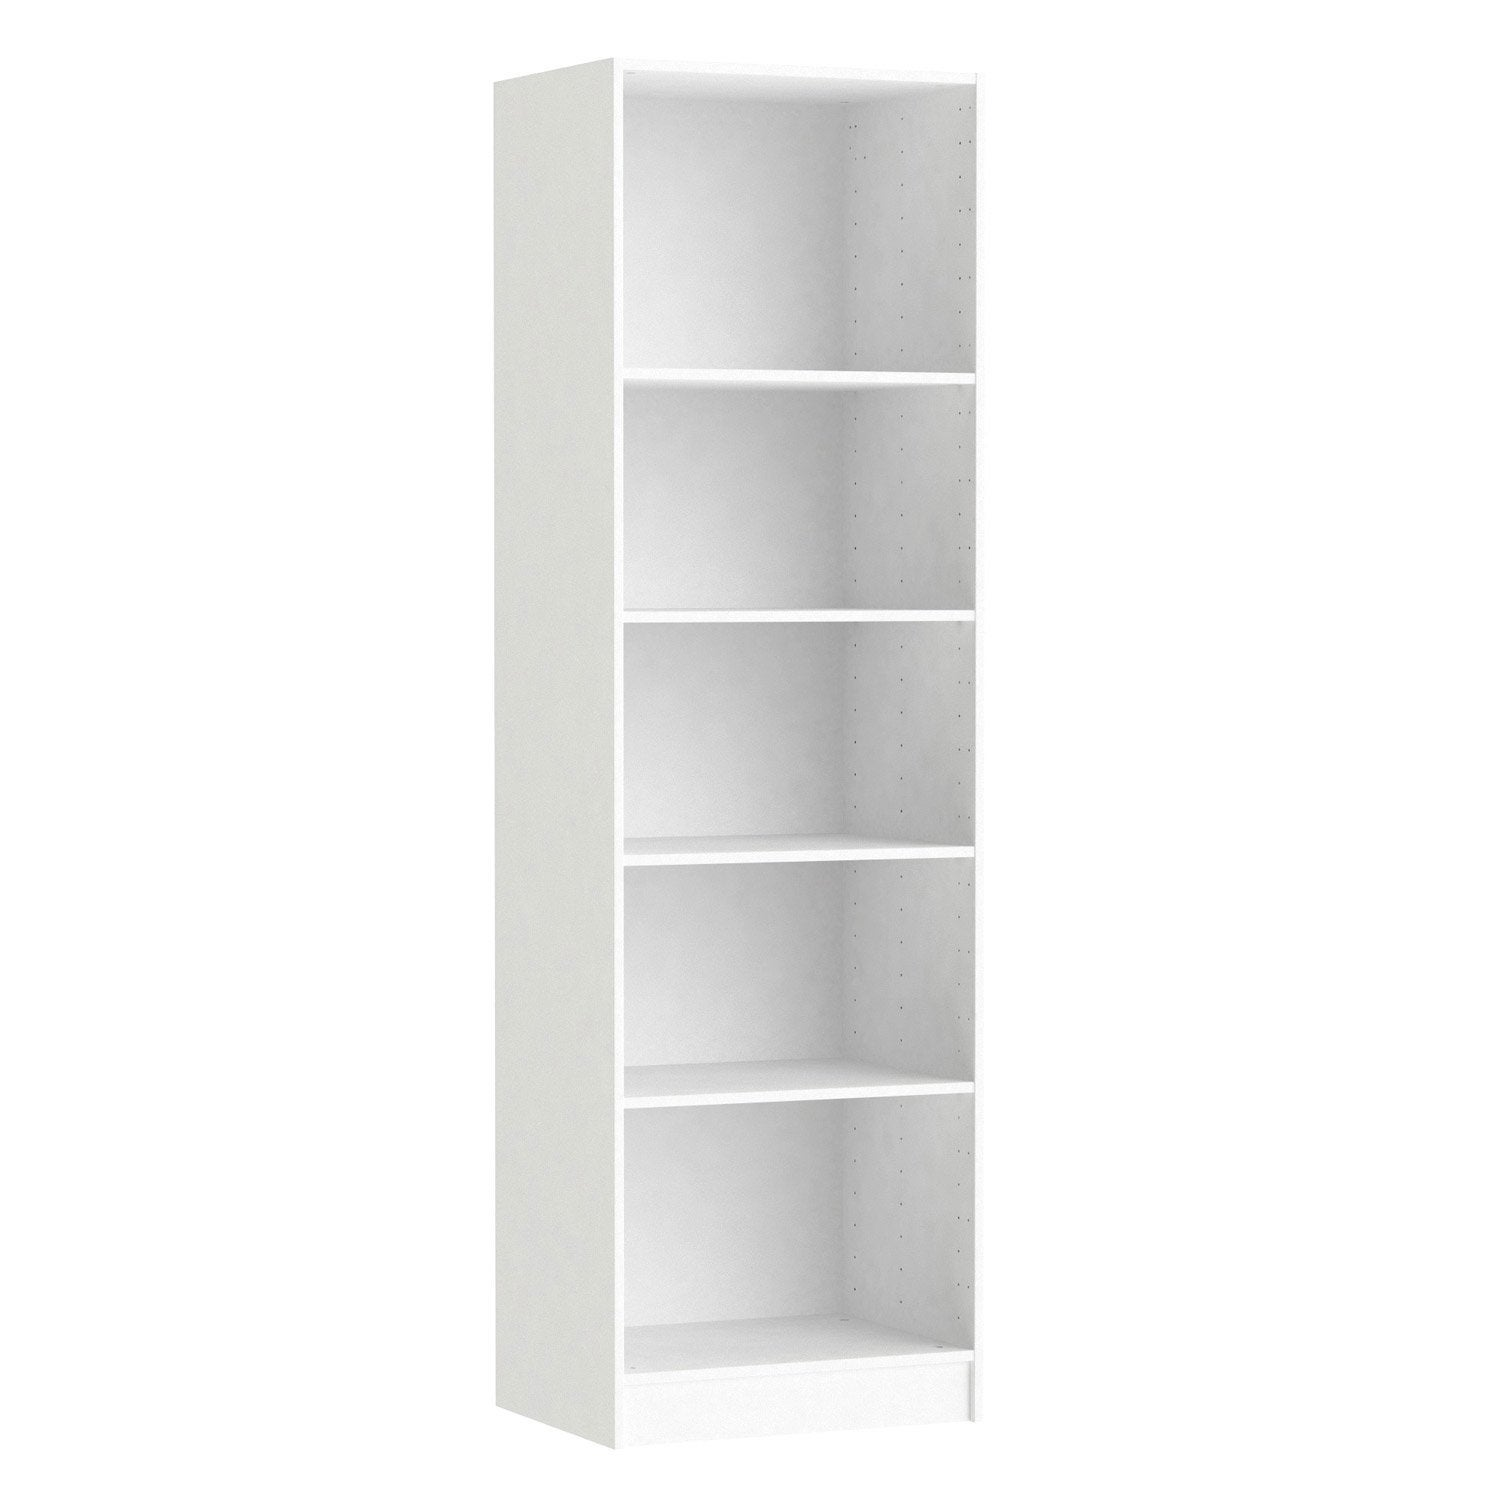 Caisson spaceo home 200 x 60 x 45 cm blanc leroy merlin for Porte 60 x 30